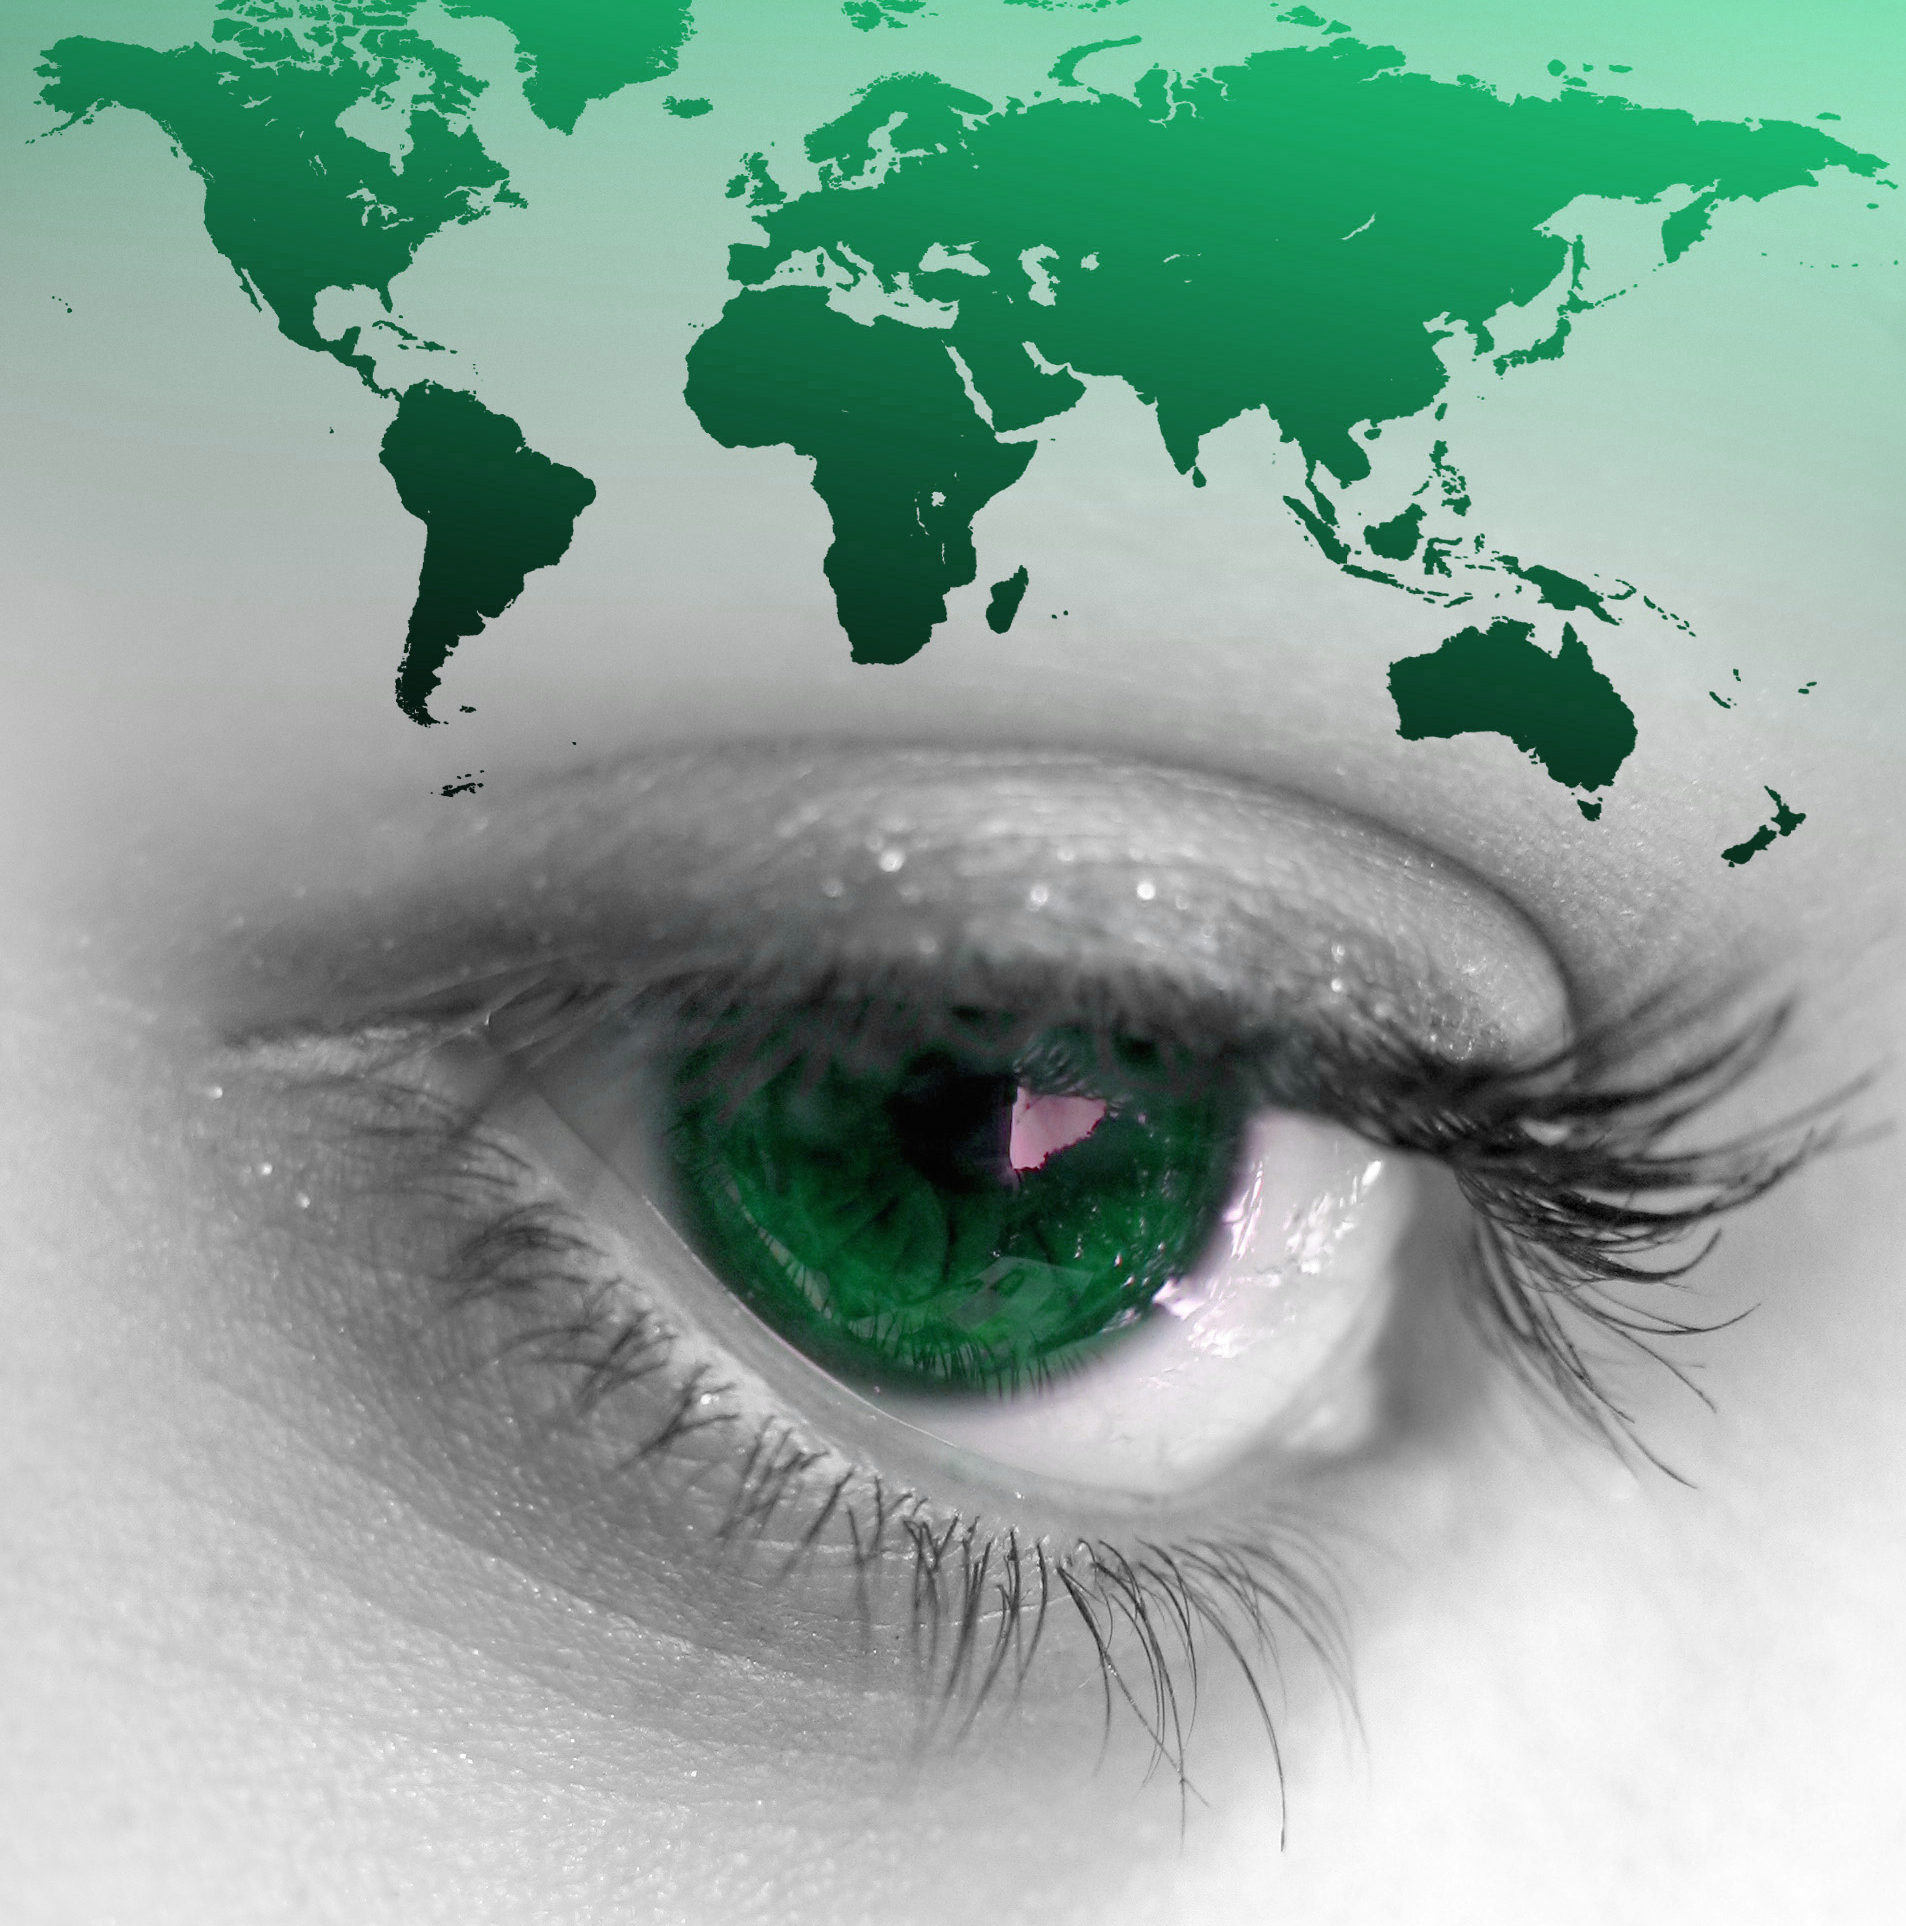 montage-of-a-pretty-color-isolated-eye-with-the-world-continents_HYsXBDRBo.jpg